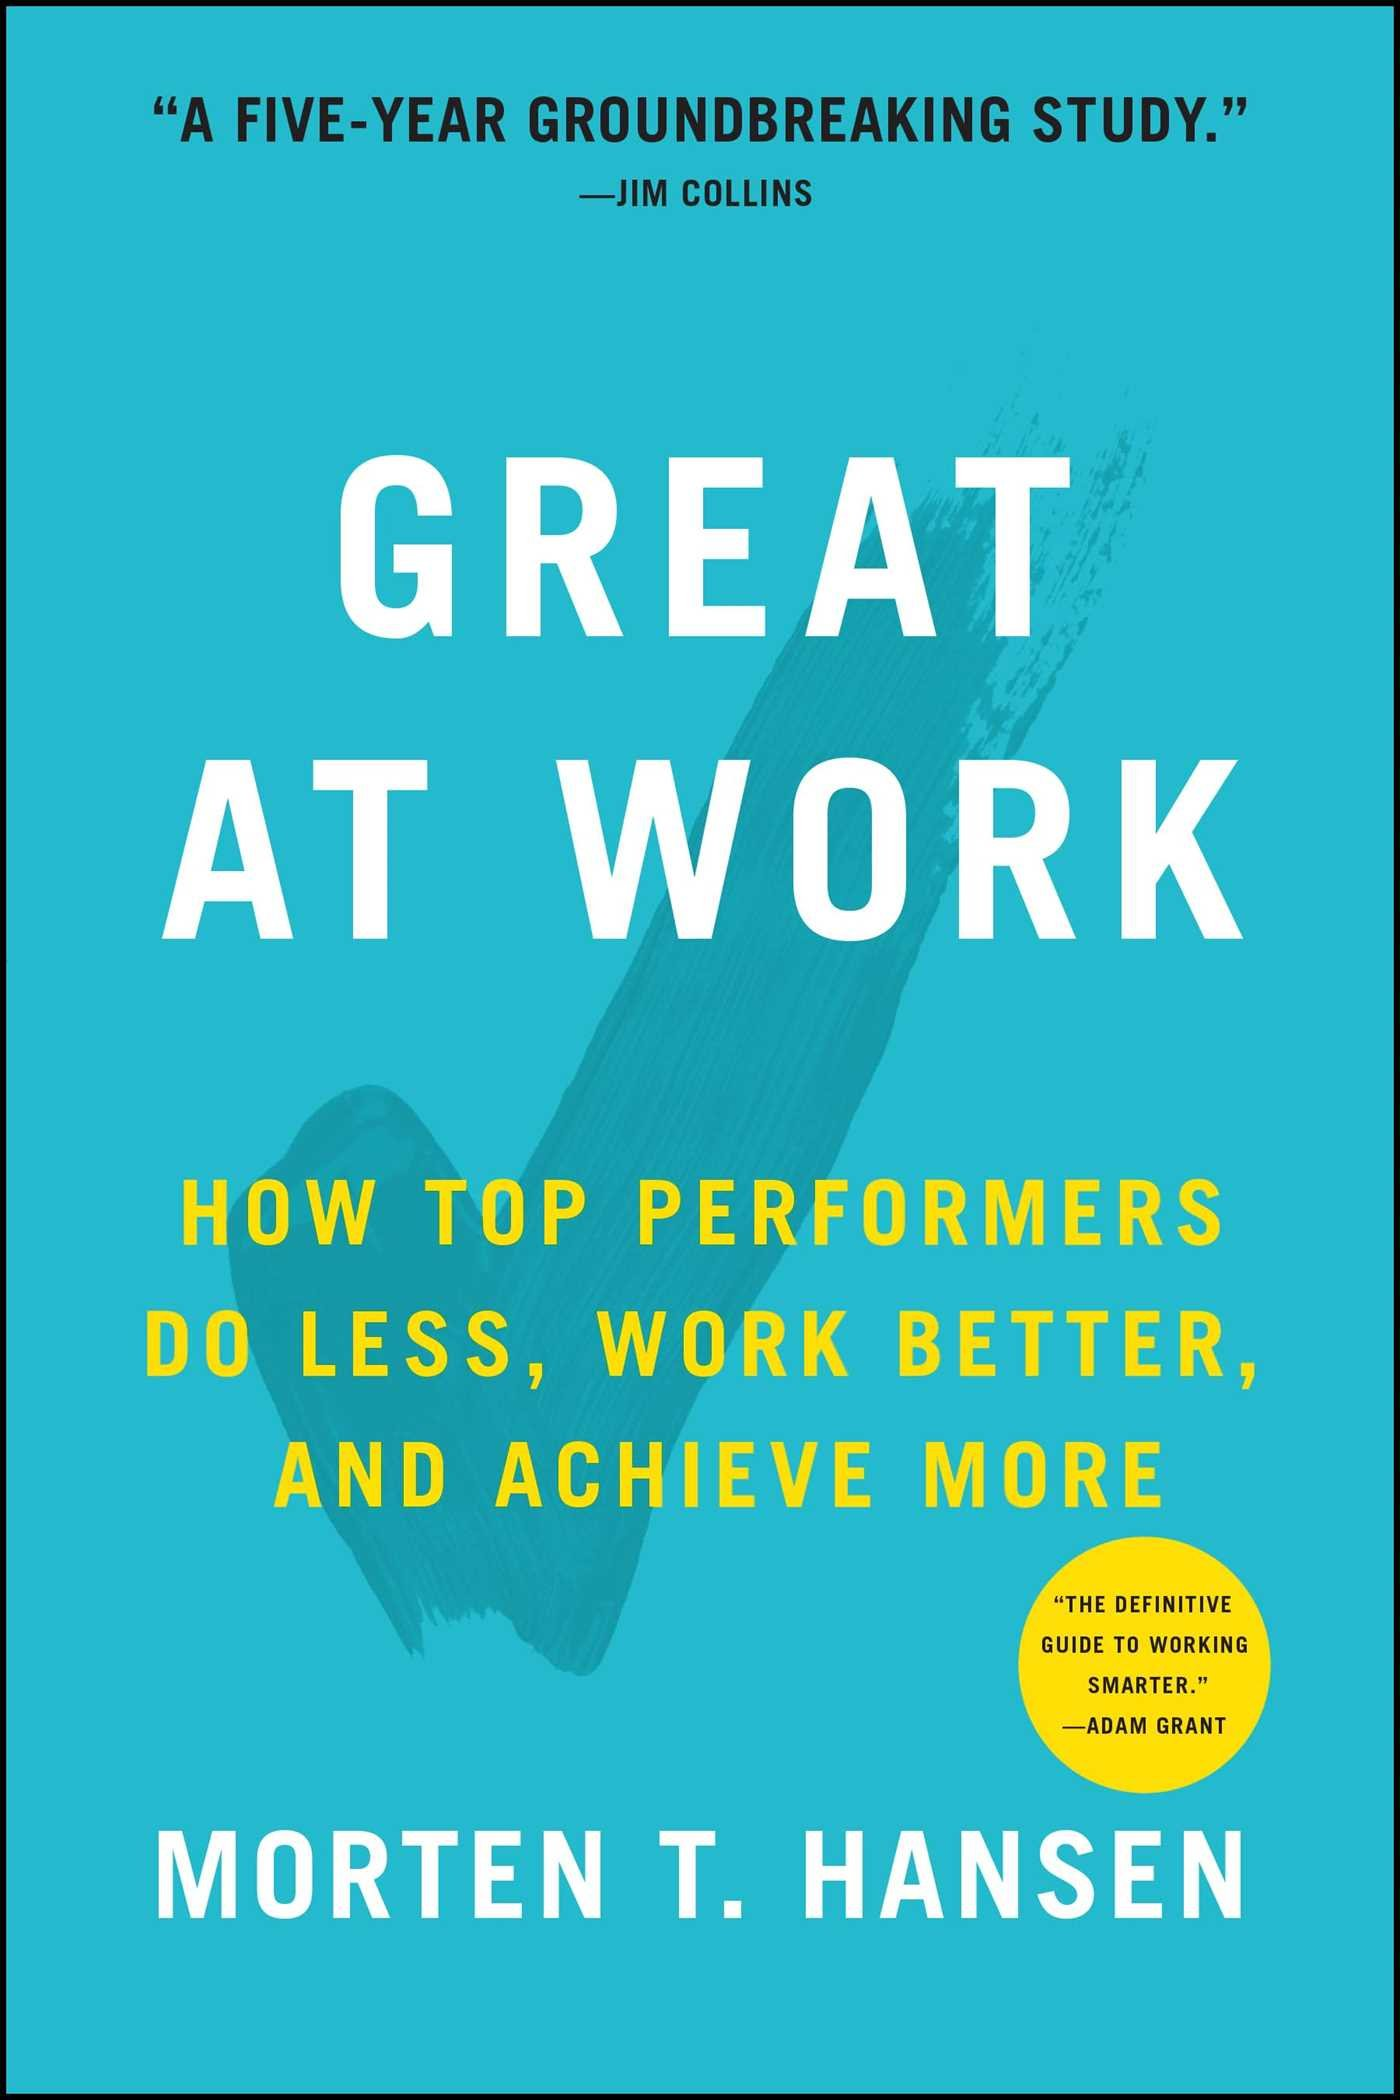 """From the New York Times bestselling coauthor of Great by Choice comes an authoritative, practical guide to individual performance—based on analysis from an exhaustive, groundbreaking study.  Why do some people perform better at work than others? This deceptively simple question continues to confound professionals in all sectors of the workforce. Now, after a unique, five-year study of more than 5,000 managers and employees, Morten Hansen reveals the answers in his """"Seven Work Smarter Practices"""" that can be applied by anyone looking to maximize their time and performance.  Each of Hansen's seven practices is highlighted by inspiring stories from individuals in his comprehensive study. You'll meet a high school principal who engineered a dramatic turnaround of his failing high school; a rural Indian farmer determined to establish a better way of life for women in his village; and a sushi chef, whose simple preparation has led to his restaurant (tucked away under a Tokyo subway station underpass) being awarded the maximum of three Michelin stars. Hansen also explains how the way Alfred Hitchcock filmed Psycho and the 1911 race to become the first explorer to reach the South Pole both illustrate the use of his seven practices (even before they were identified).  Each chapter contains questions and key insights to allow you to assess your own performance and figure out your work strengths, as well as your weaknesses. Once you understand your individual style, there are mini-quizzes, questionnaires, and clear tips to assist you focus on a strategy to become a more productive worker. Extensive, accessible, and friendly, Great at Work will help you achieve more by working less, backed by unprecedented statistical analysis."""